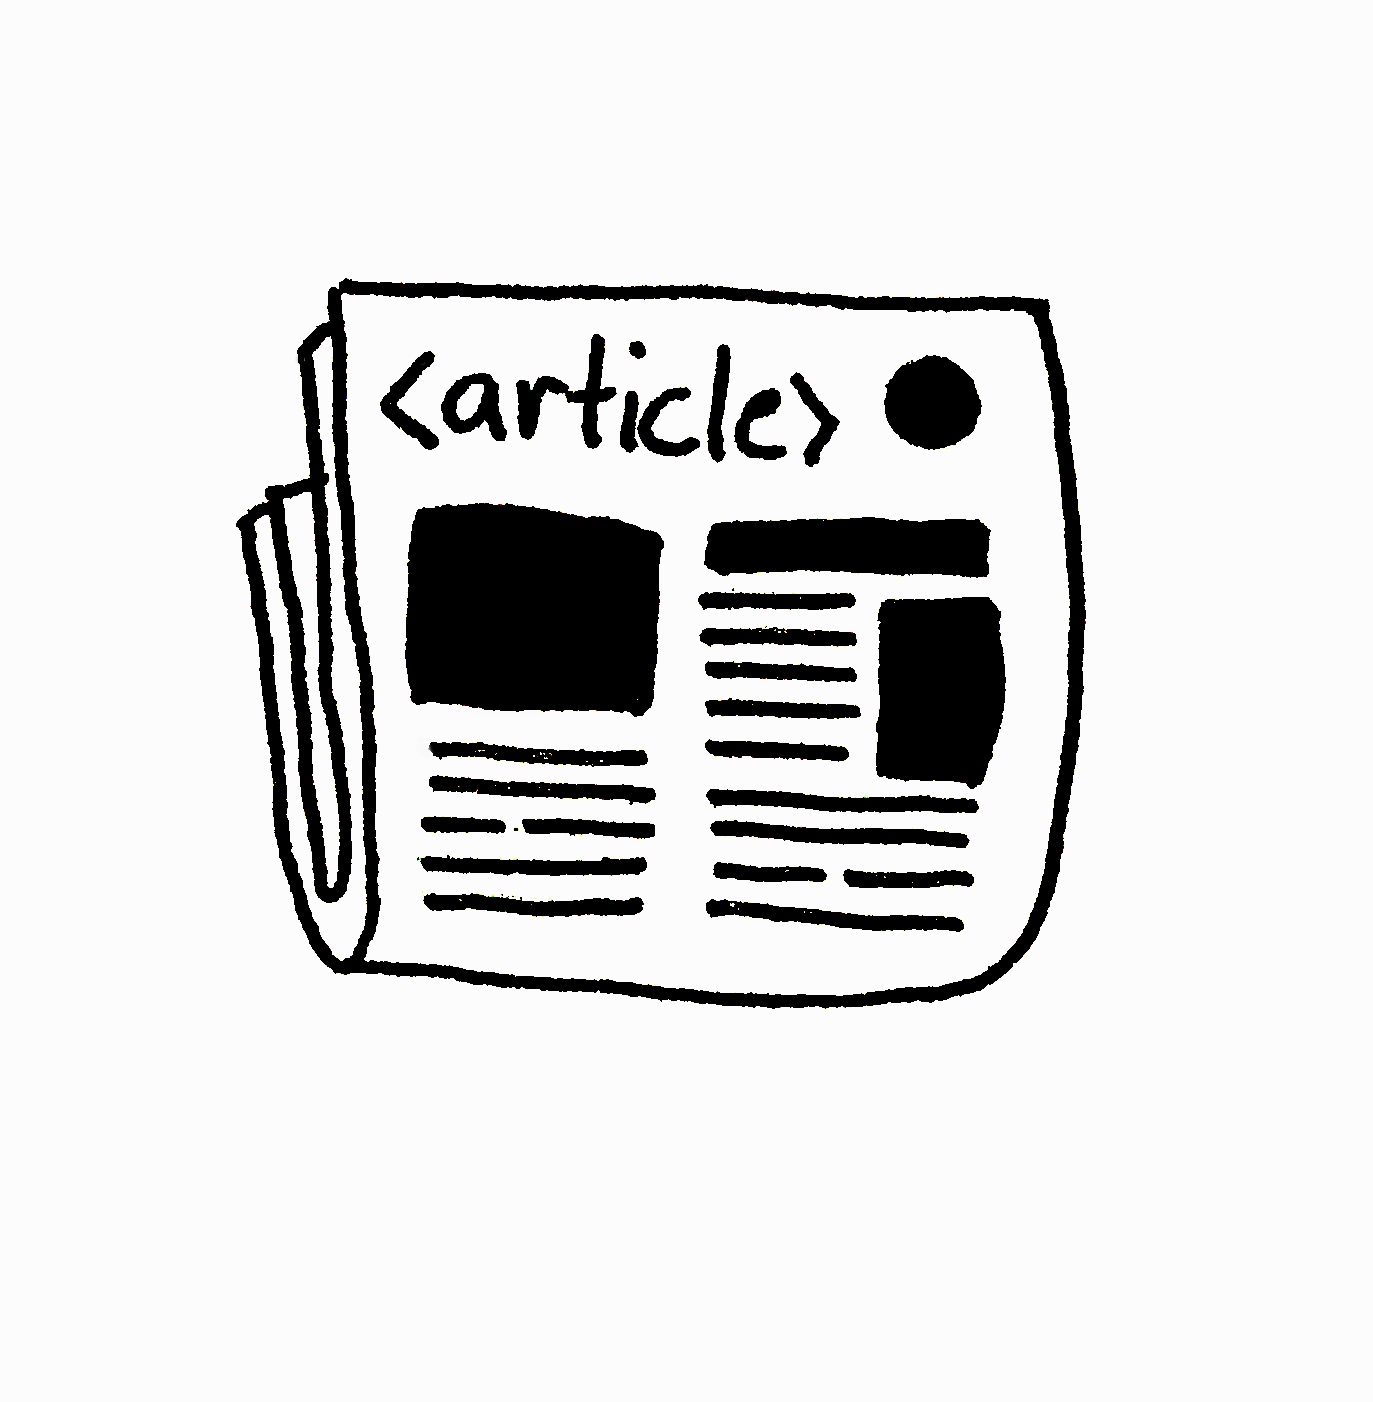 An illustration of a newspaper with the text '<article>' written as the headline